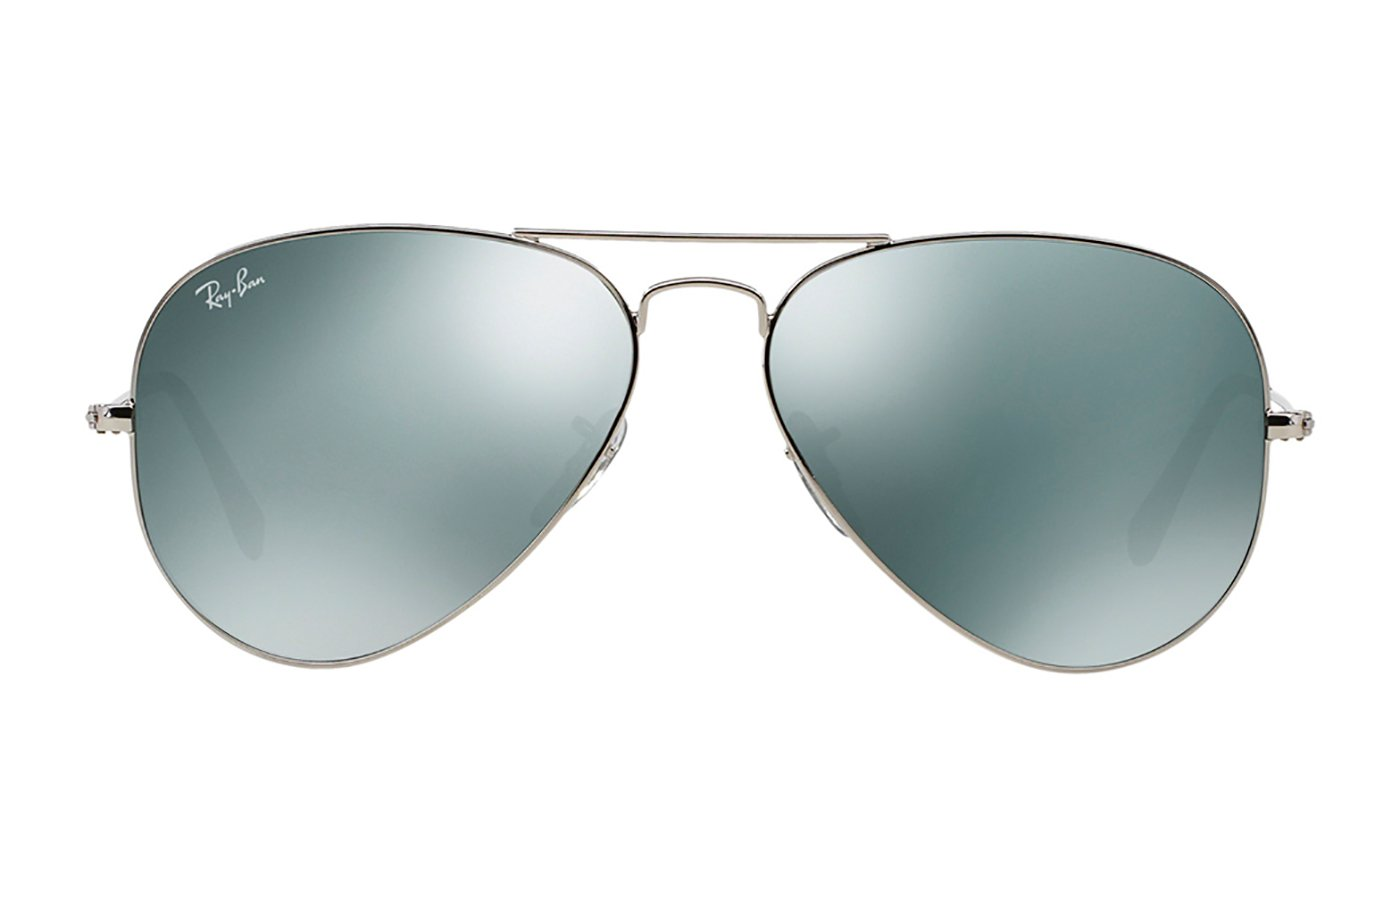 RAY-BAN AVIATOR LARGE METAL 0RB3025 58 W3277 SILVER